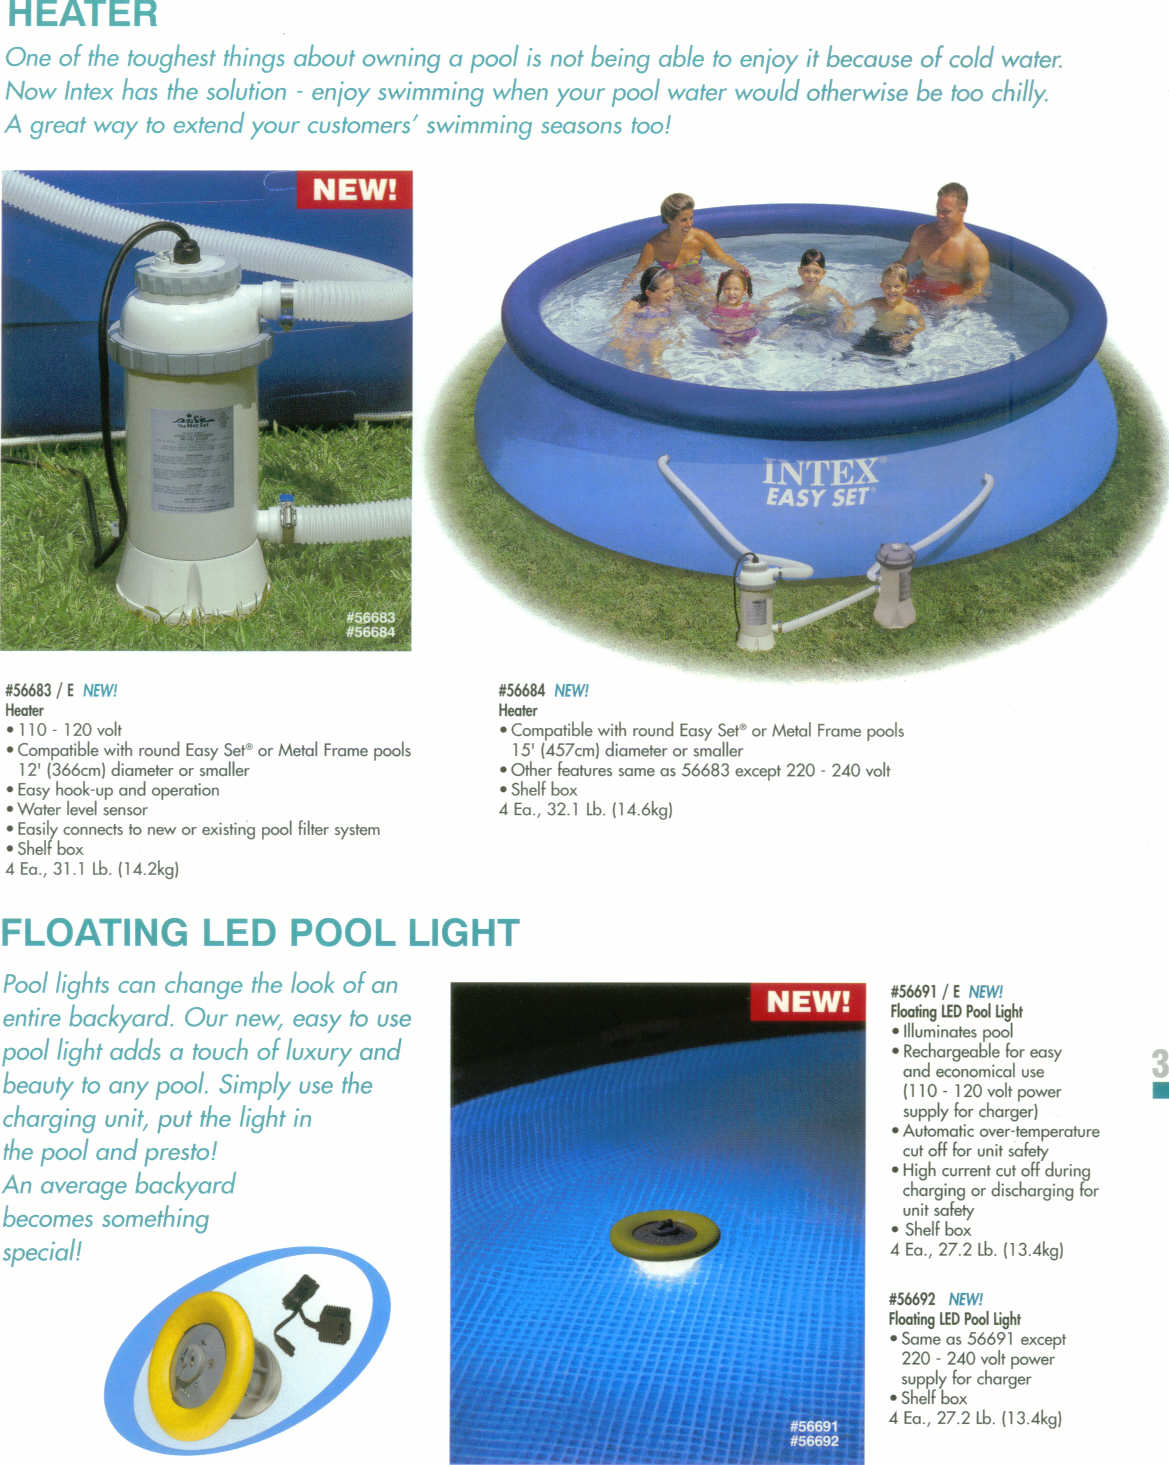 Intex pool heater 110 volts 3 kw for Swimming pool heaters